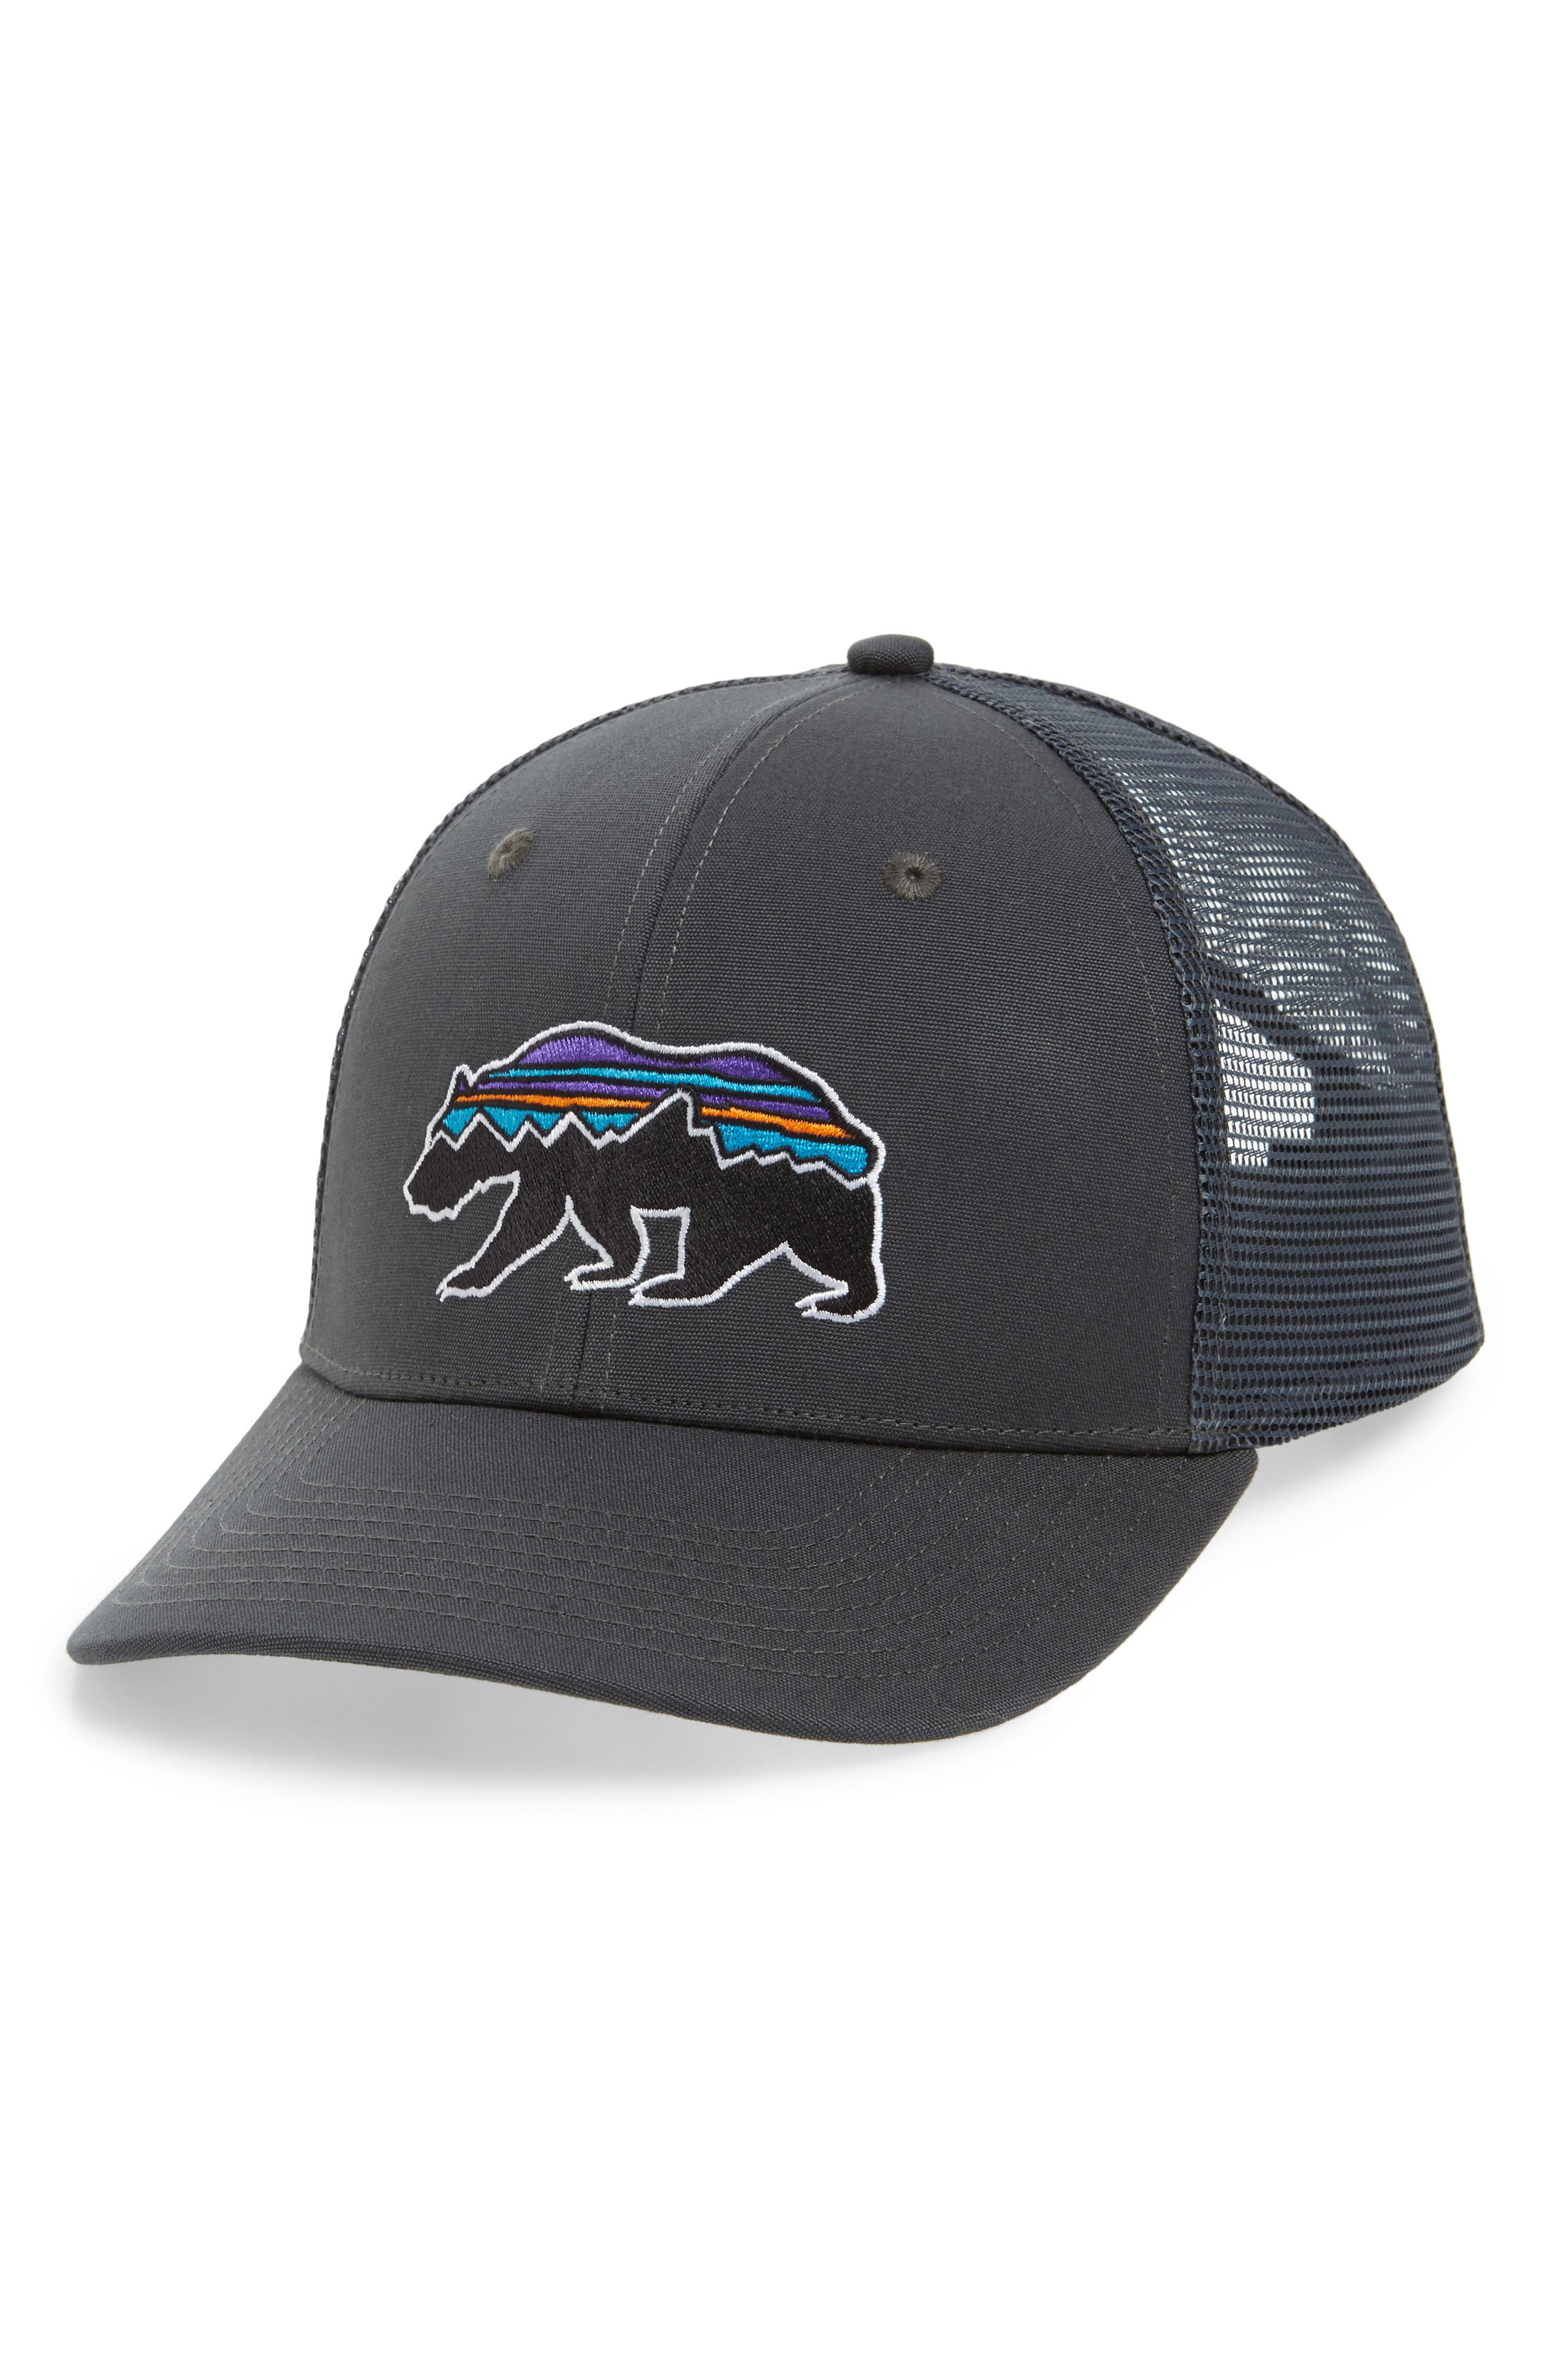 Fitz Roy Bear Trucker Cap,                         Main,                         color, FORGE GREY